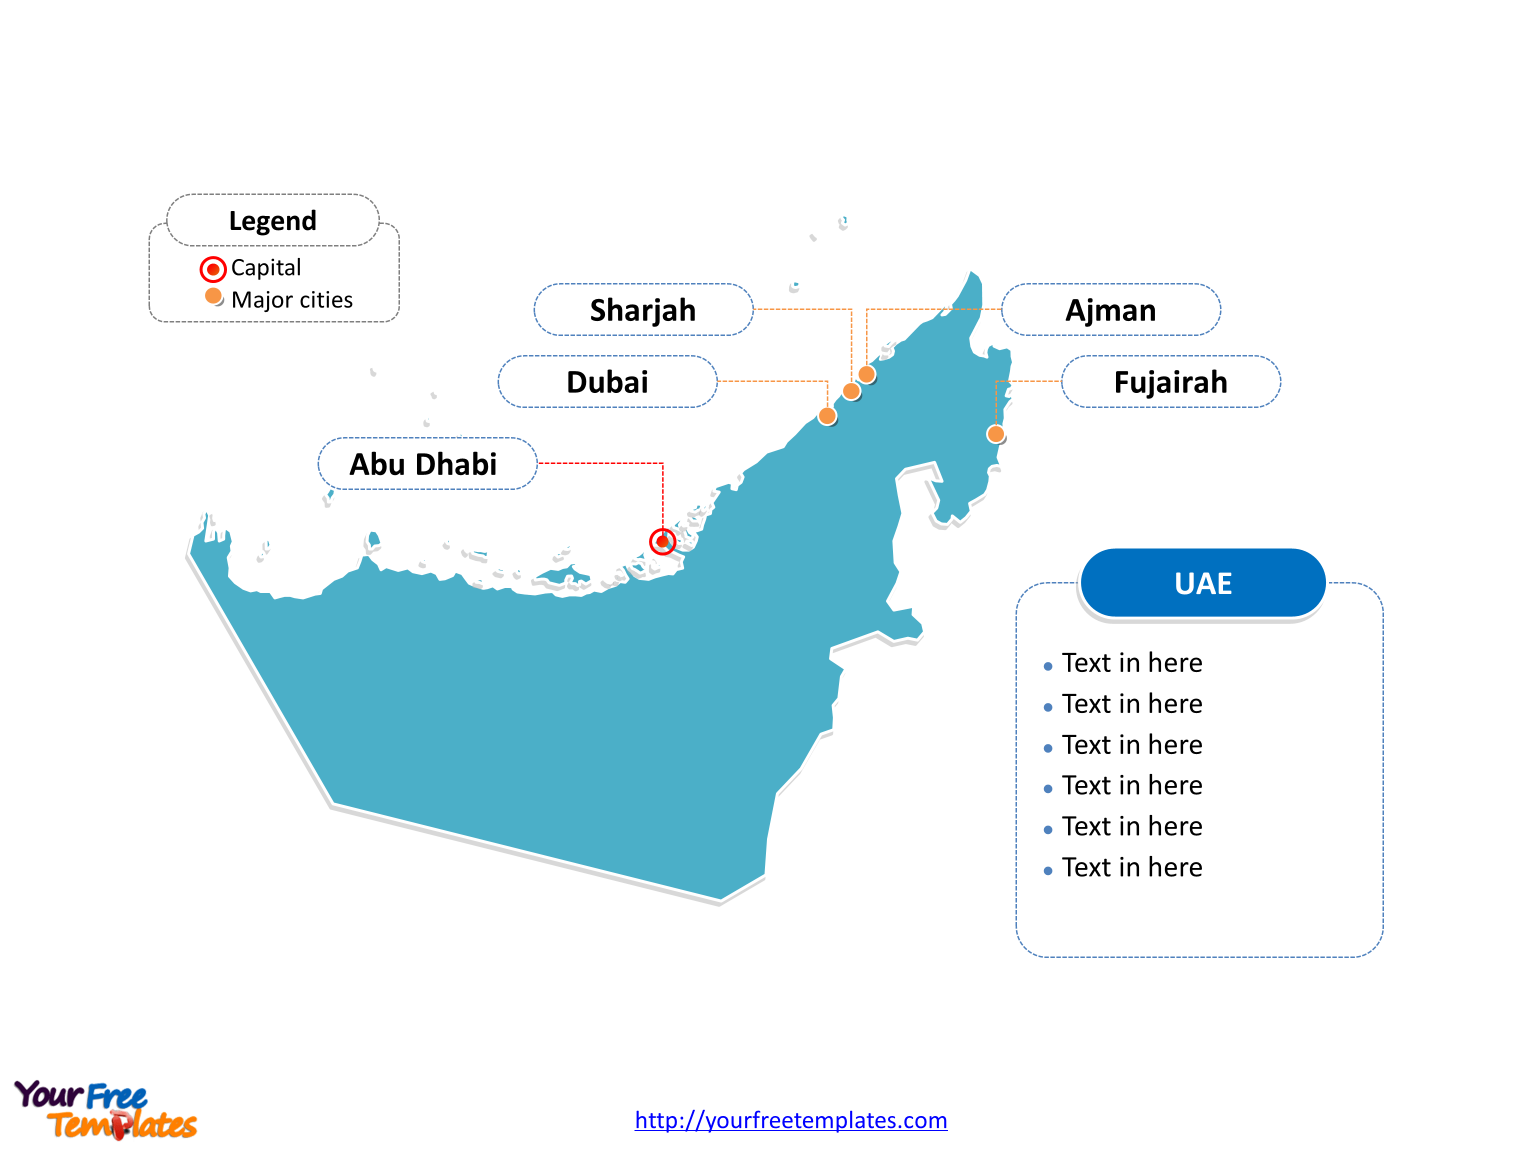 Free United Arab Emirates Editable Map - Free PowerPoint ... on map of algeria, middle east, ras al-khaimah, burj al-arab, united states of america, map of bhutan, map of sudan, map of malaysia, arabian peninsula, persian gulf, map of iran, map of isle of man, map of ethiopia, map of dubai and surrounding countries, map of netherlands, abu dhabi, burj khalifa, map of montenegro, saudi arabia, map of singapore, map of pakistan, map of hungary, map of oman, map of venezuela, map of bosnia, map of bahrain, map of israel, map of armenia, map of denmark,